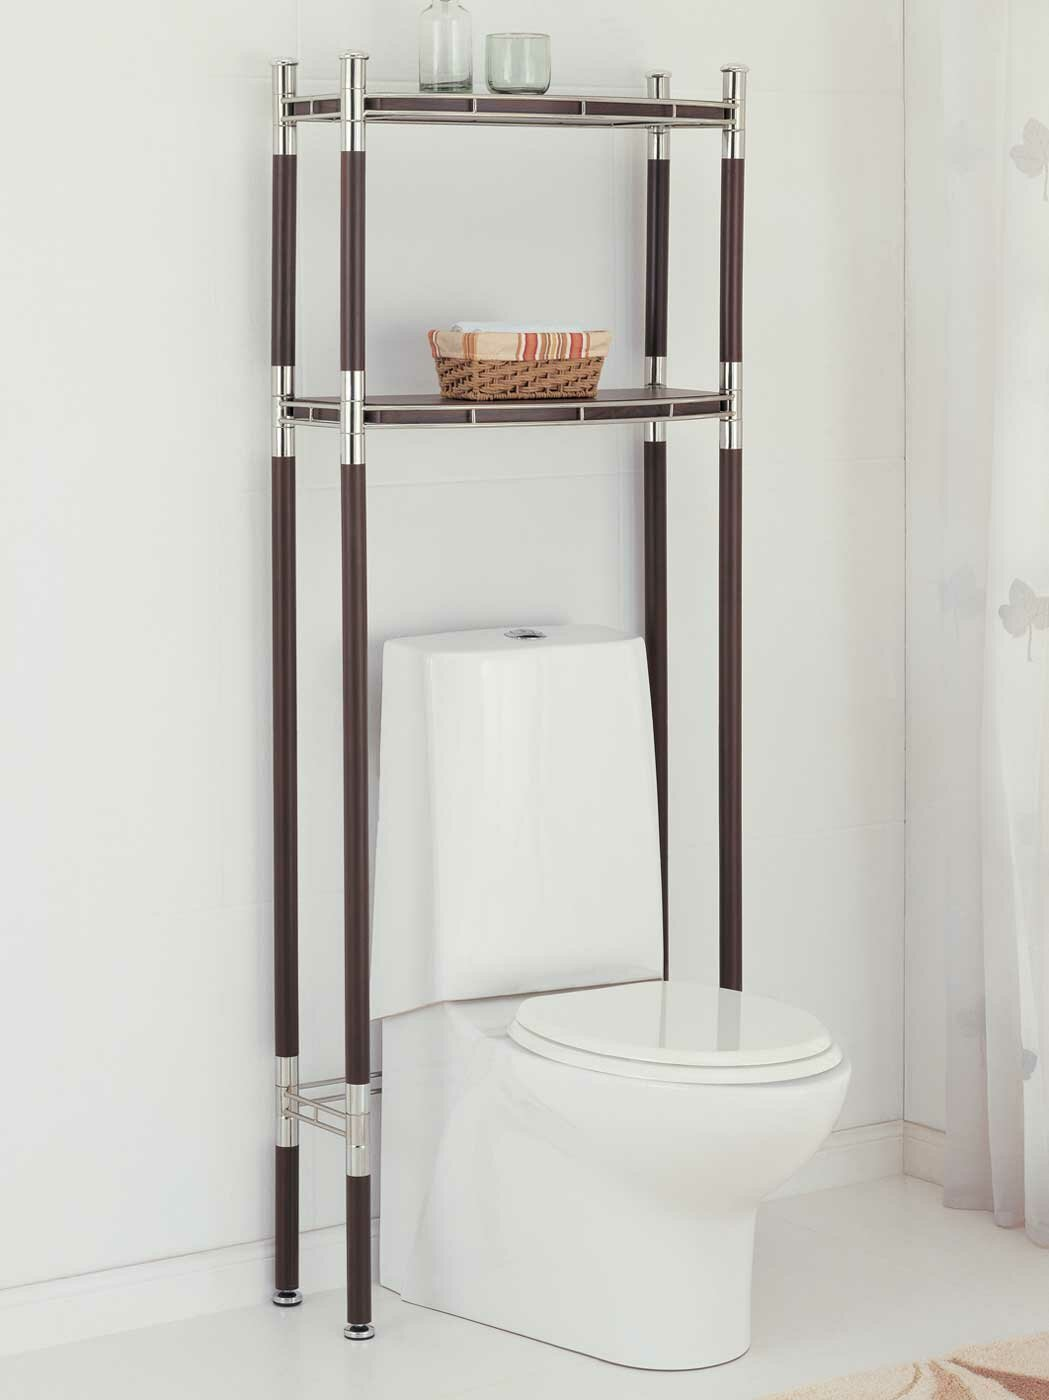 Bathroom bathroom space saver shelves toilet etagere for Bathroom cabinets above toilet